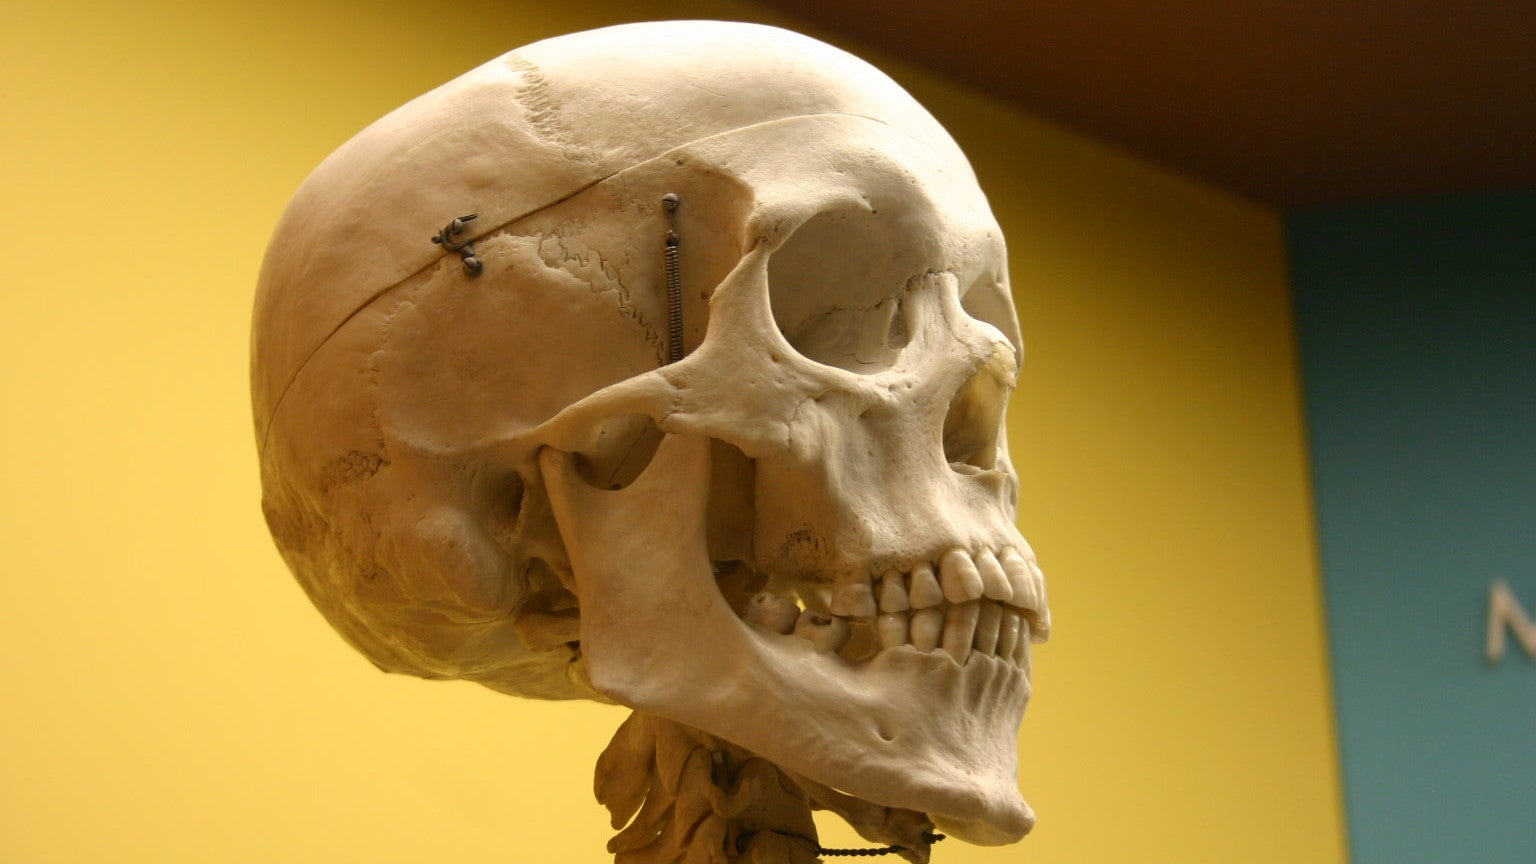 Your Bones Secrete A Hormone That Can Make You Panic, Scientists Find